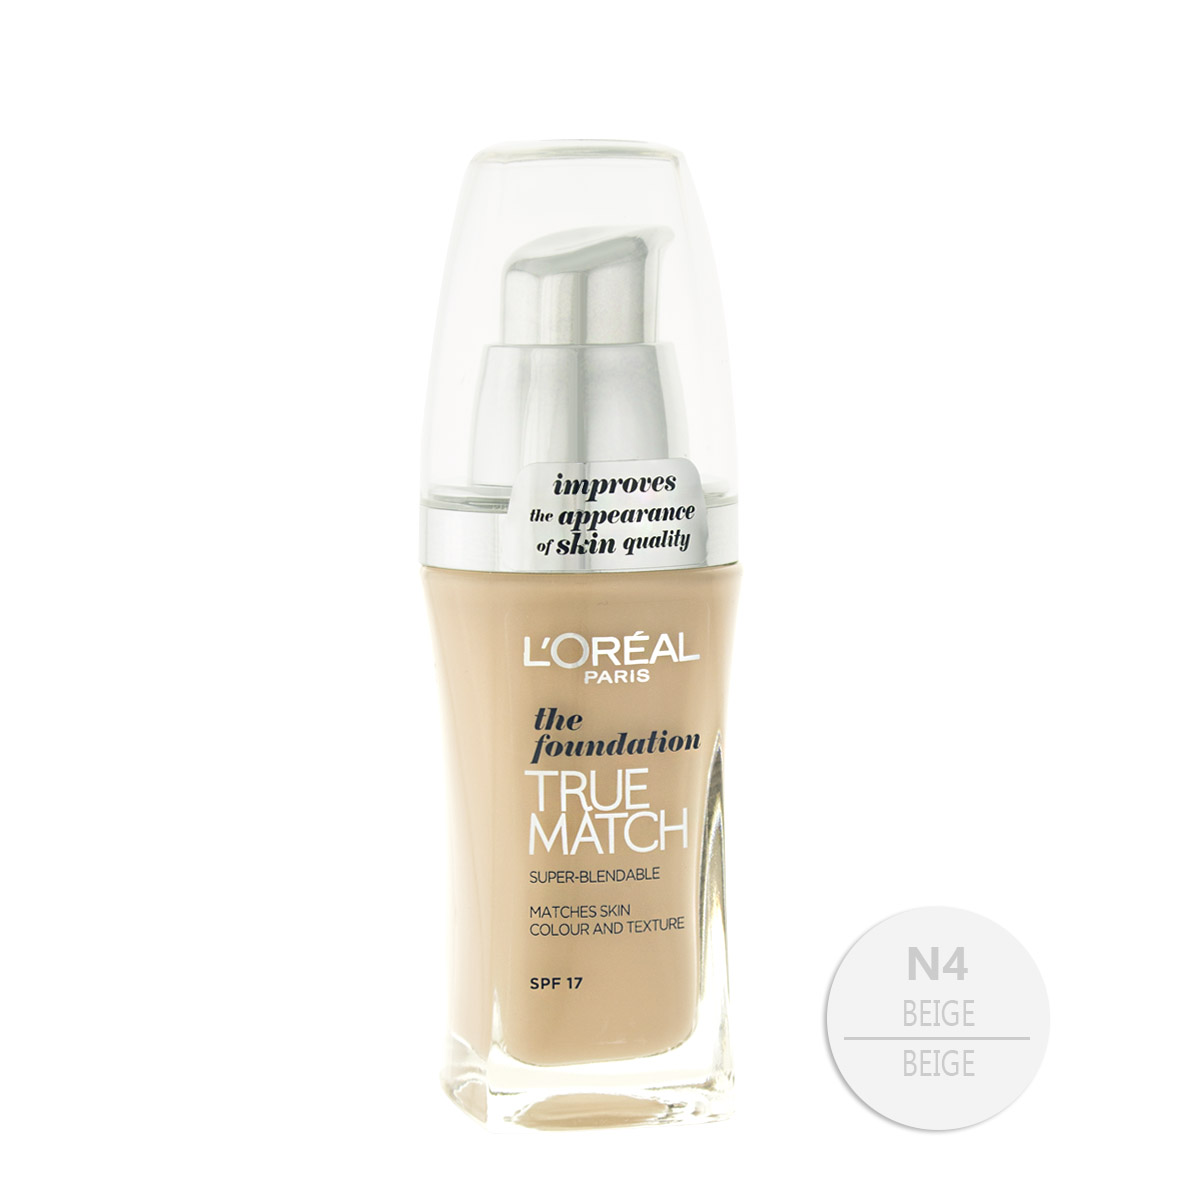 L´Oreal Paris True Match the foundation make-up (N4 Beige) 30 ml